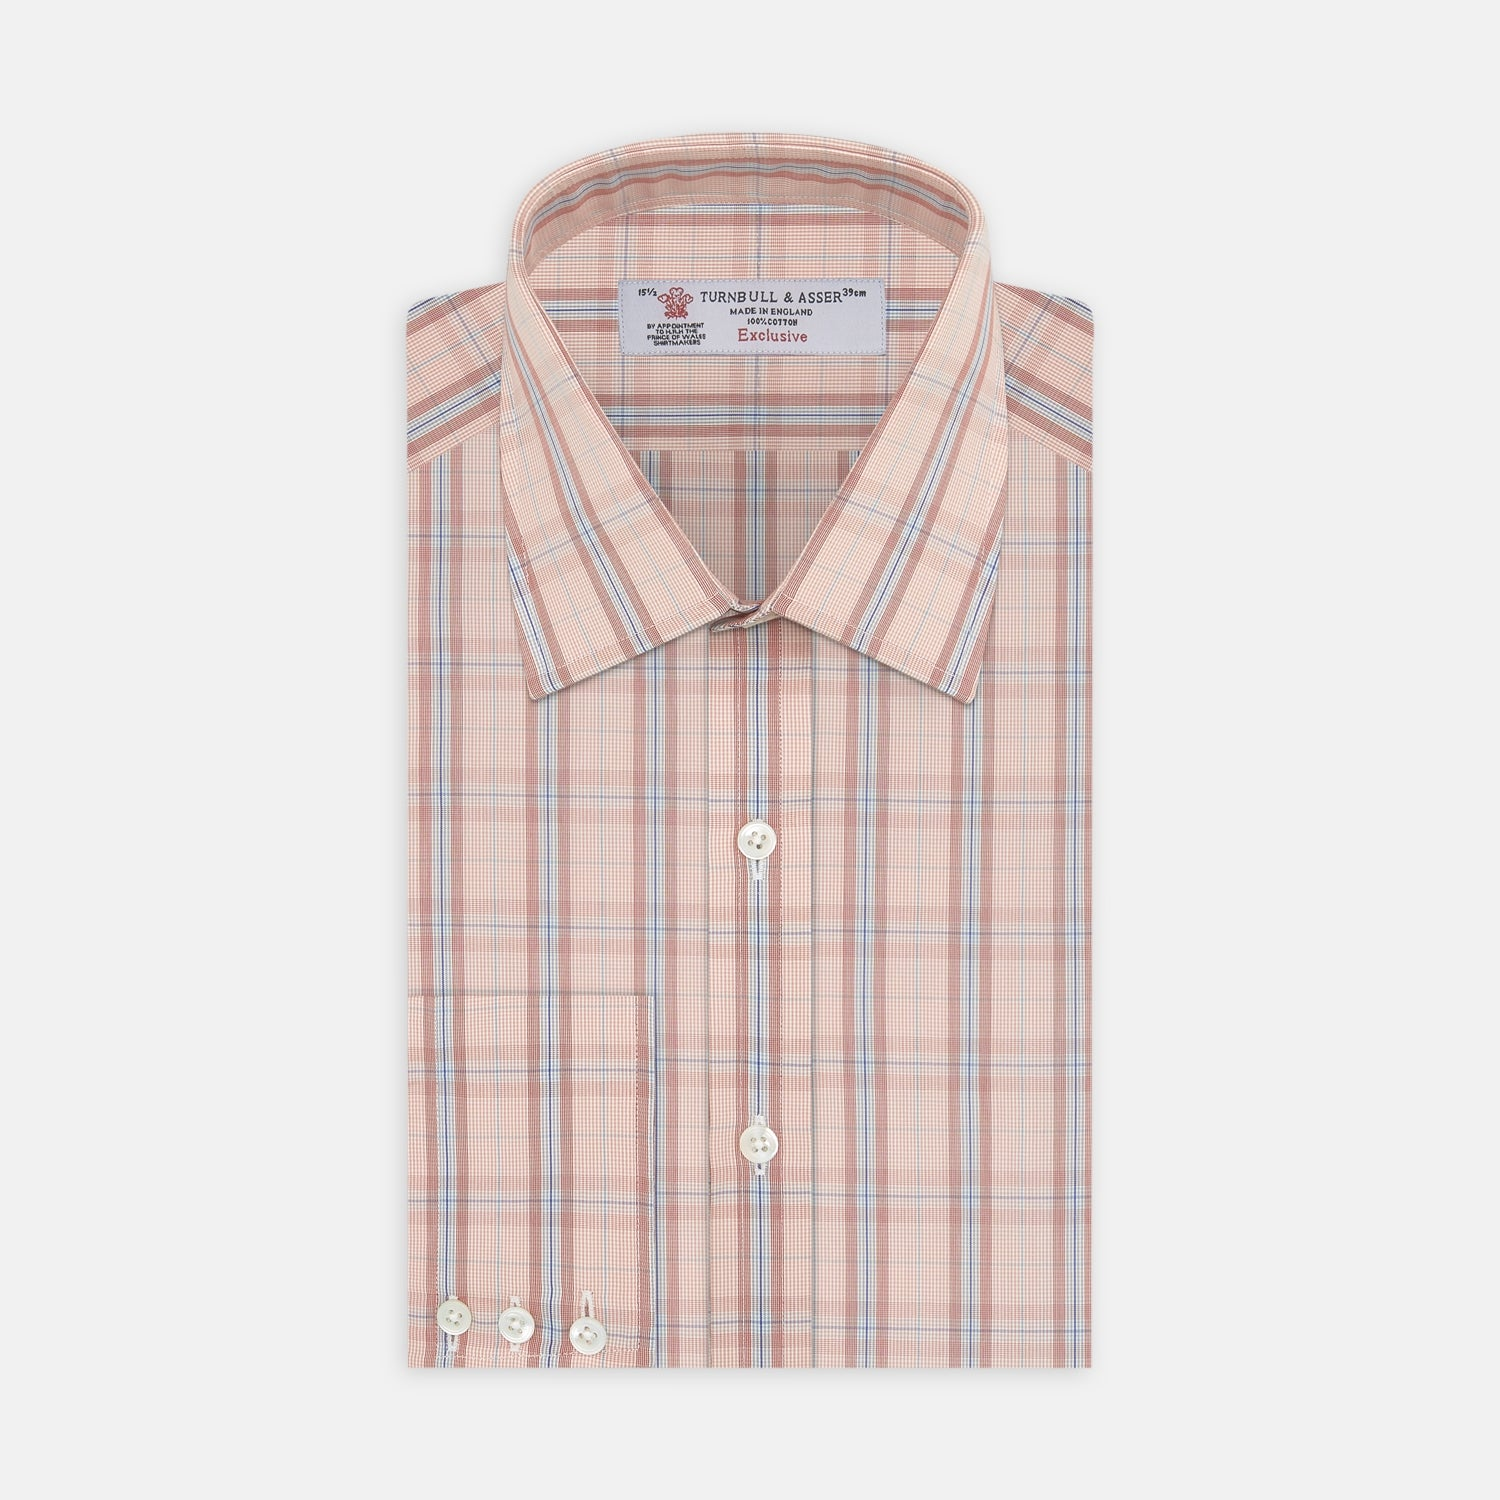 Red, Grey And Navy Mixed Check Shirt With T&A Collar And 3-Button Cuffs